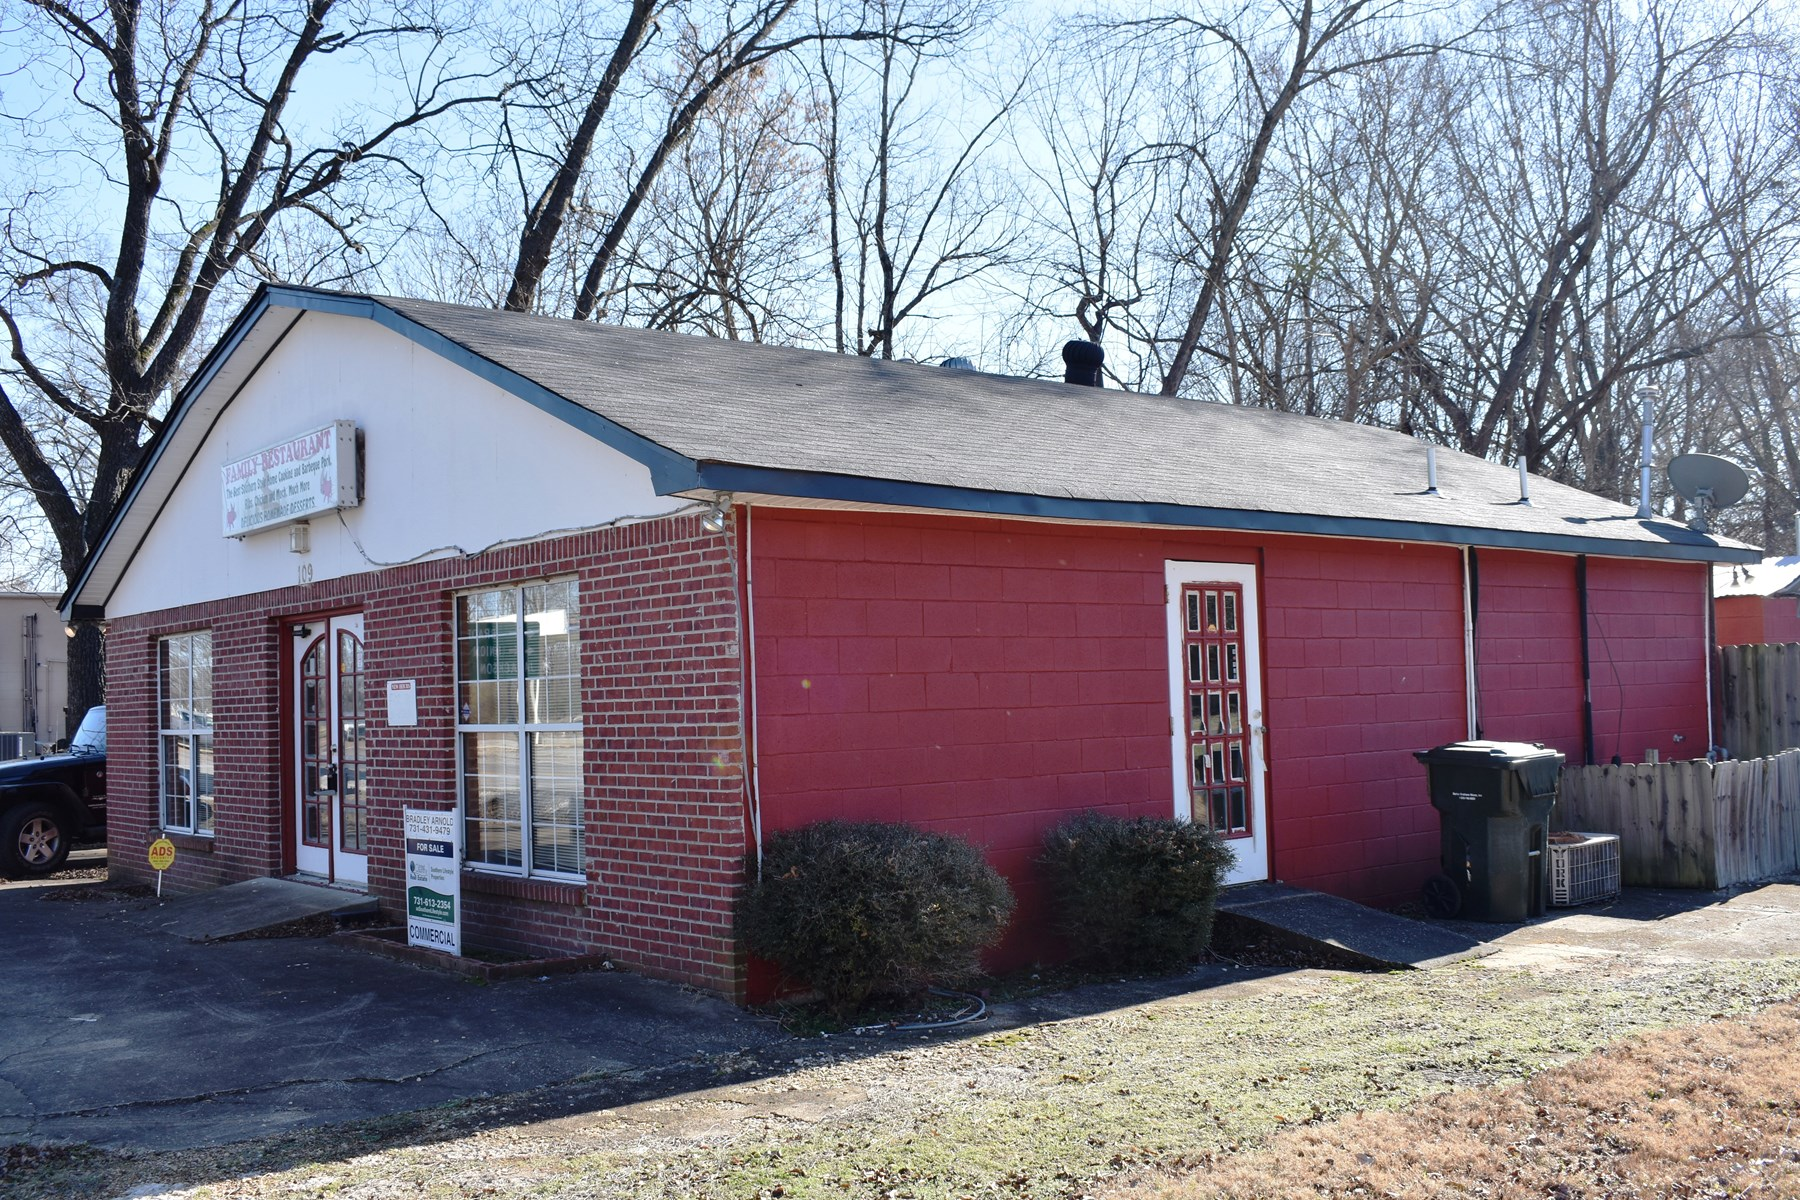 Commercial Office / Restaurant Building For Sale - Tennessee